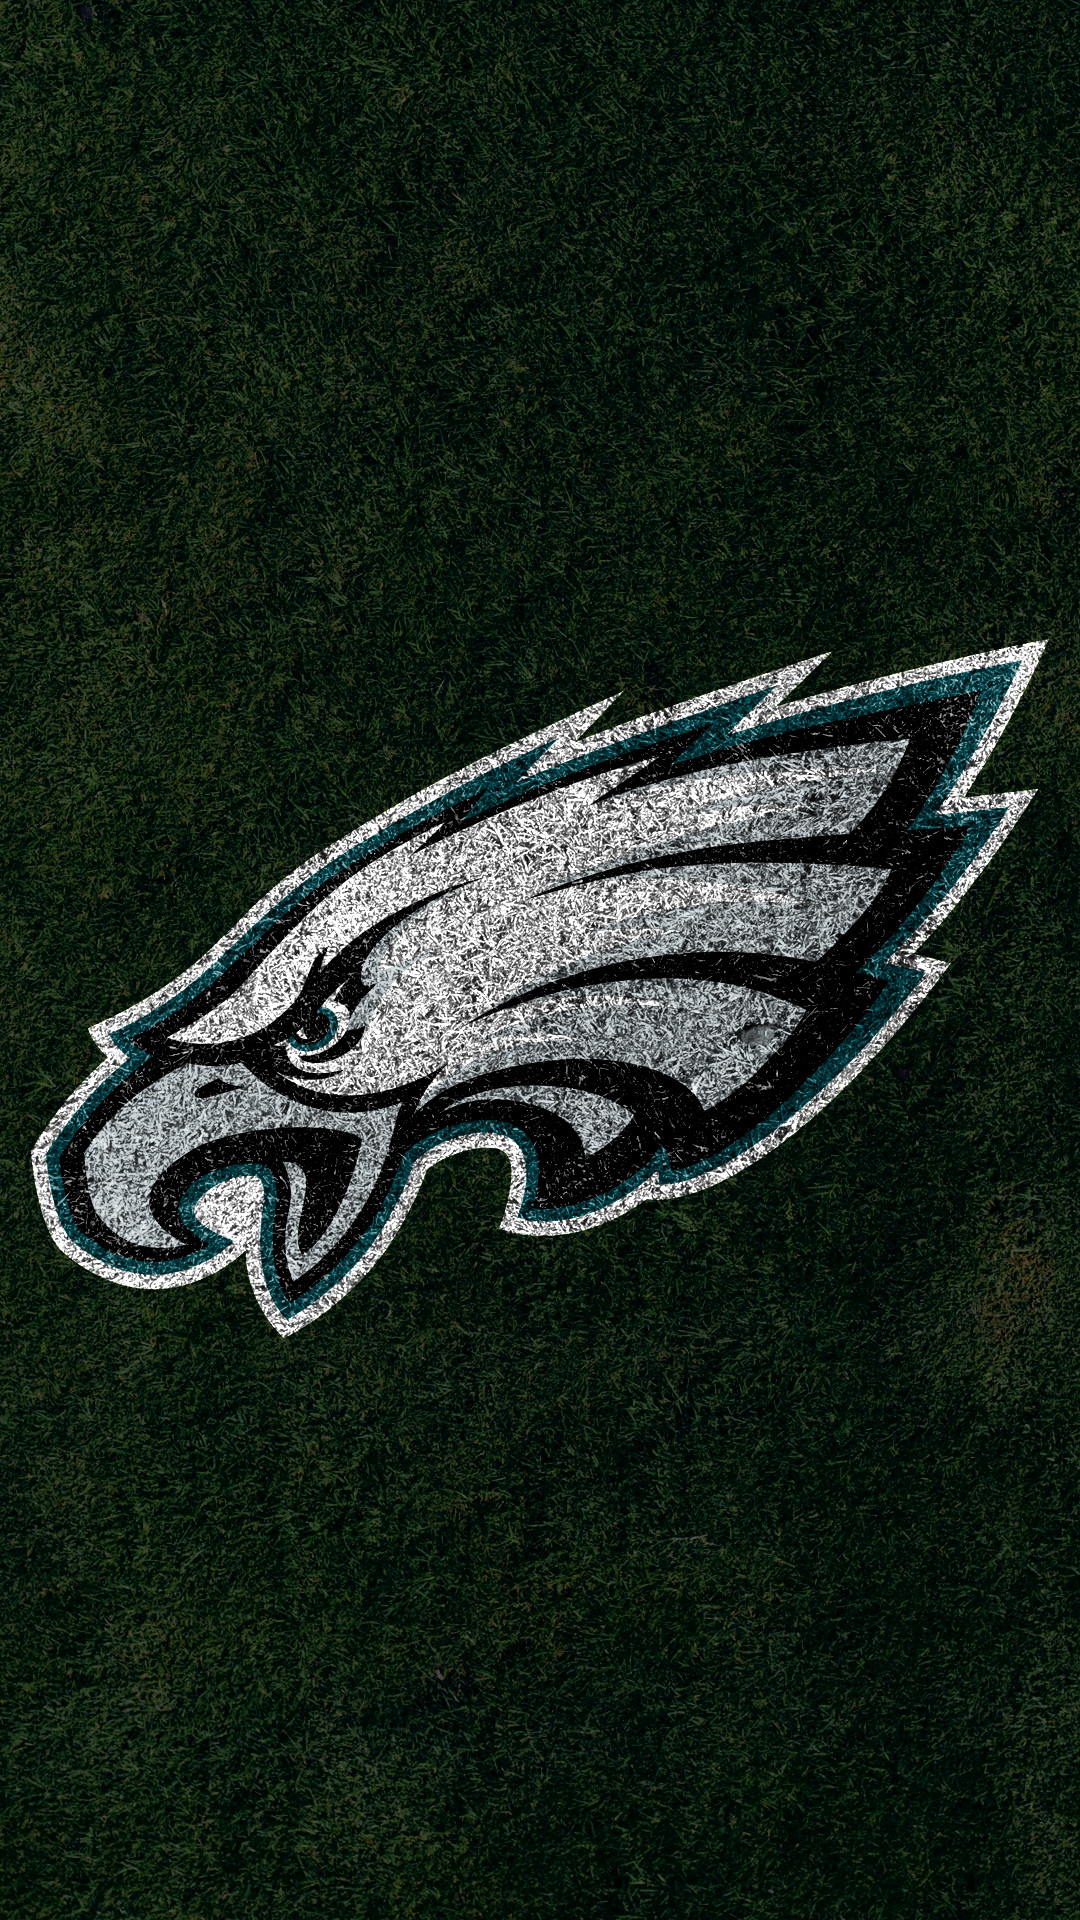 1080x1920 Philadelphia Eagles Wallpapers Wallpaper